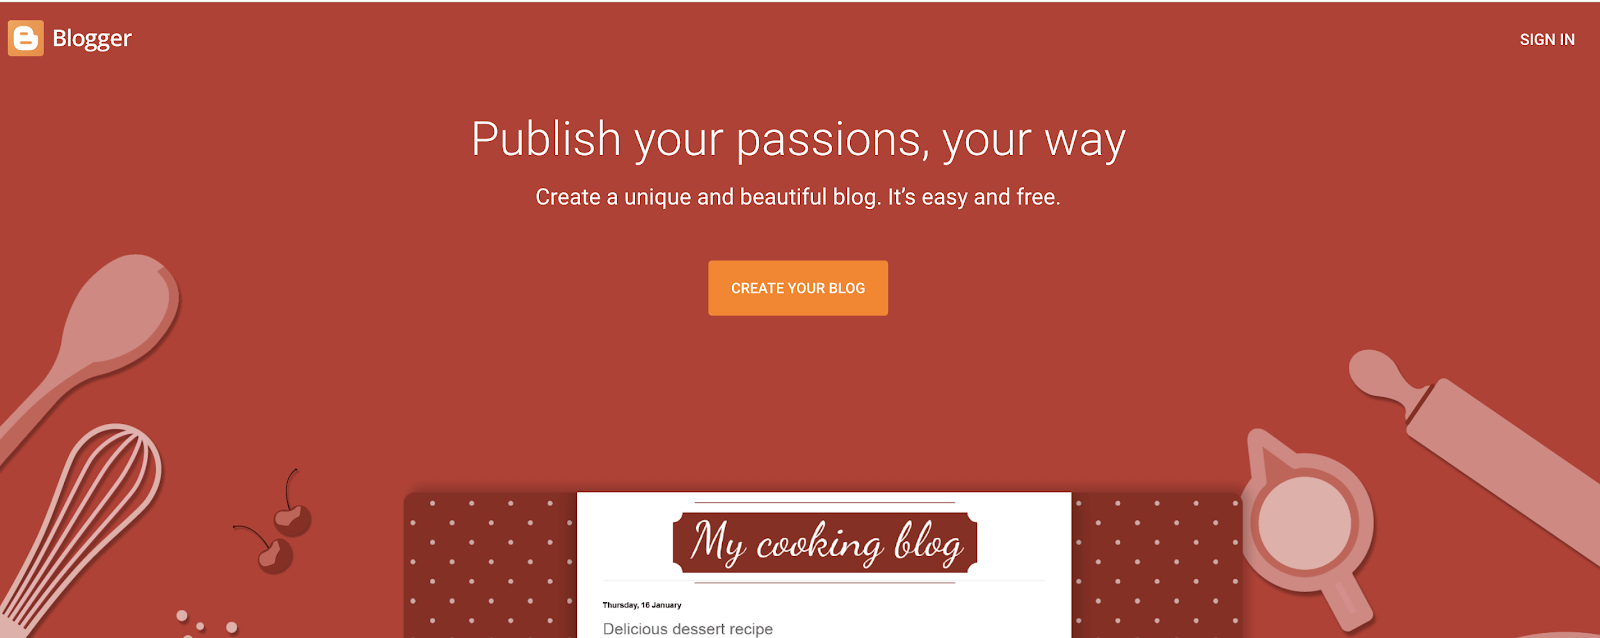 Blogger as a Free Blog Site to Use for Building a Blog for Free